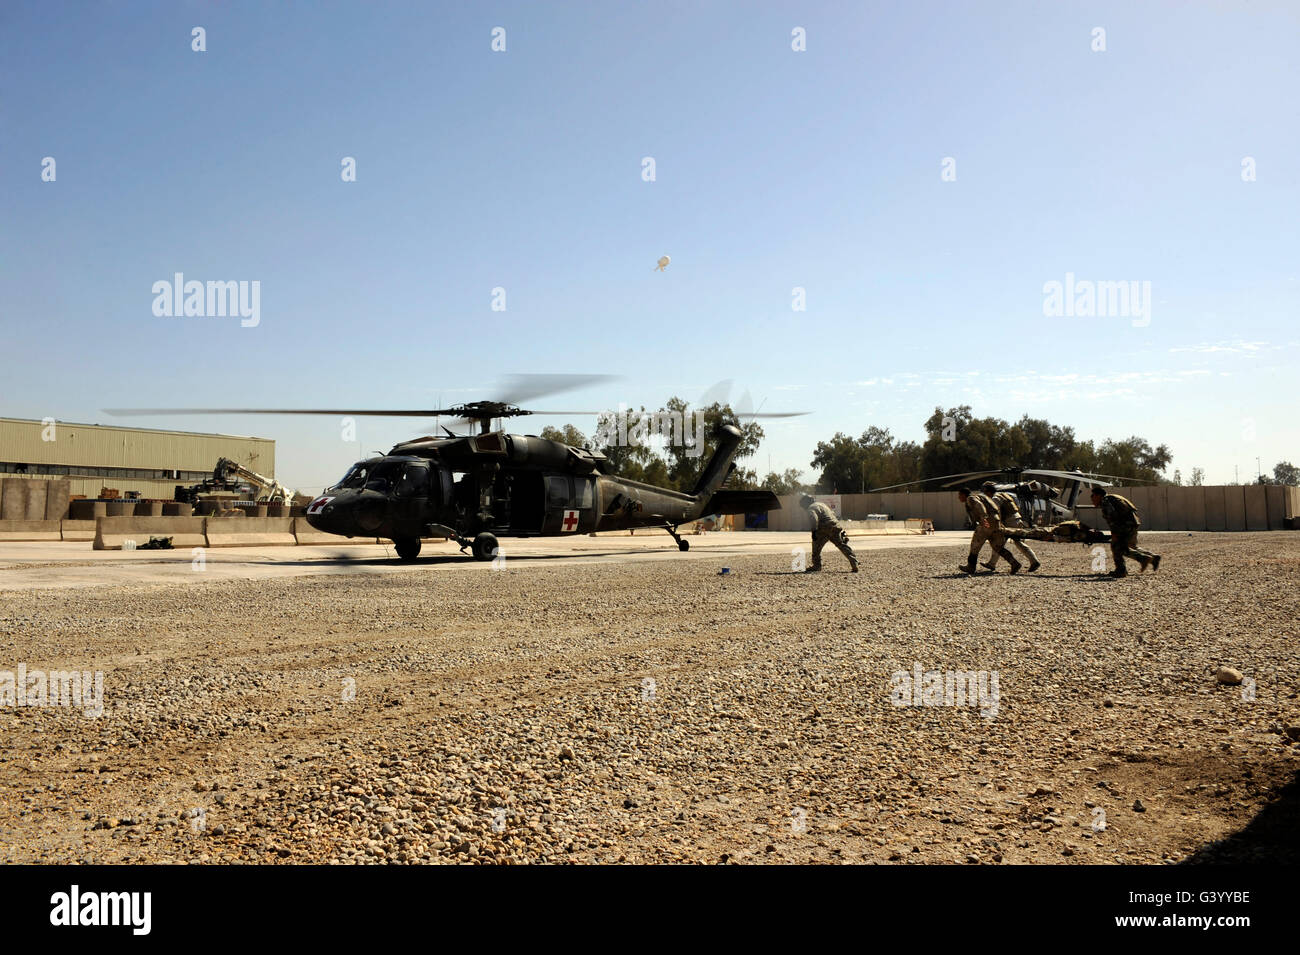 Soldiers rush a simulated casualty to a UH-60 Blackhawk helicopter. - Stock Image